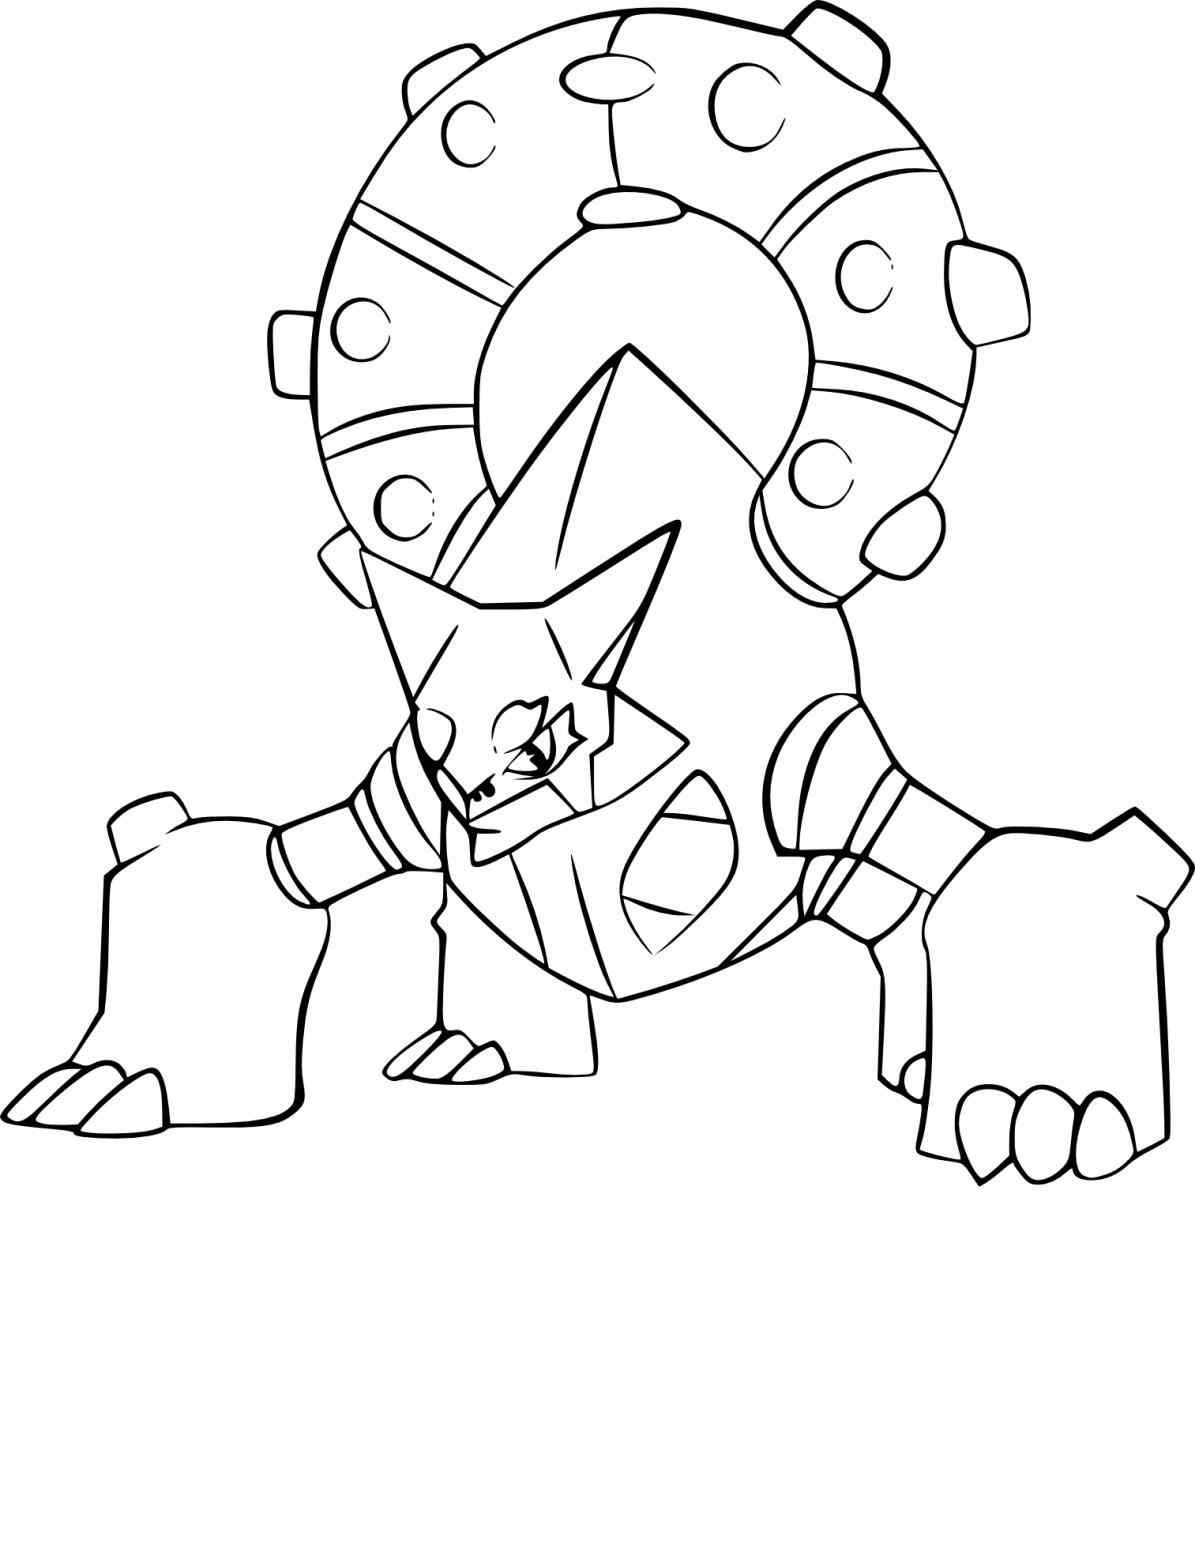 Pokemon Coloring Pages Volcanion Through The Thousand Images On The Web Regarding Pokemon Colo Pokemon Coloring Pokemon Coloring Pages Cartoon Coloring Pages